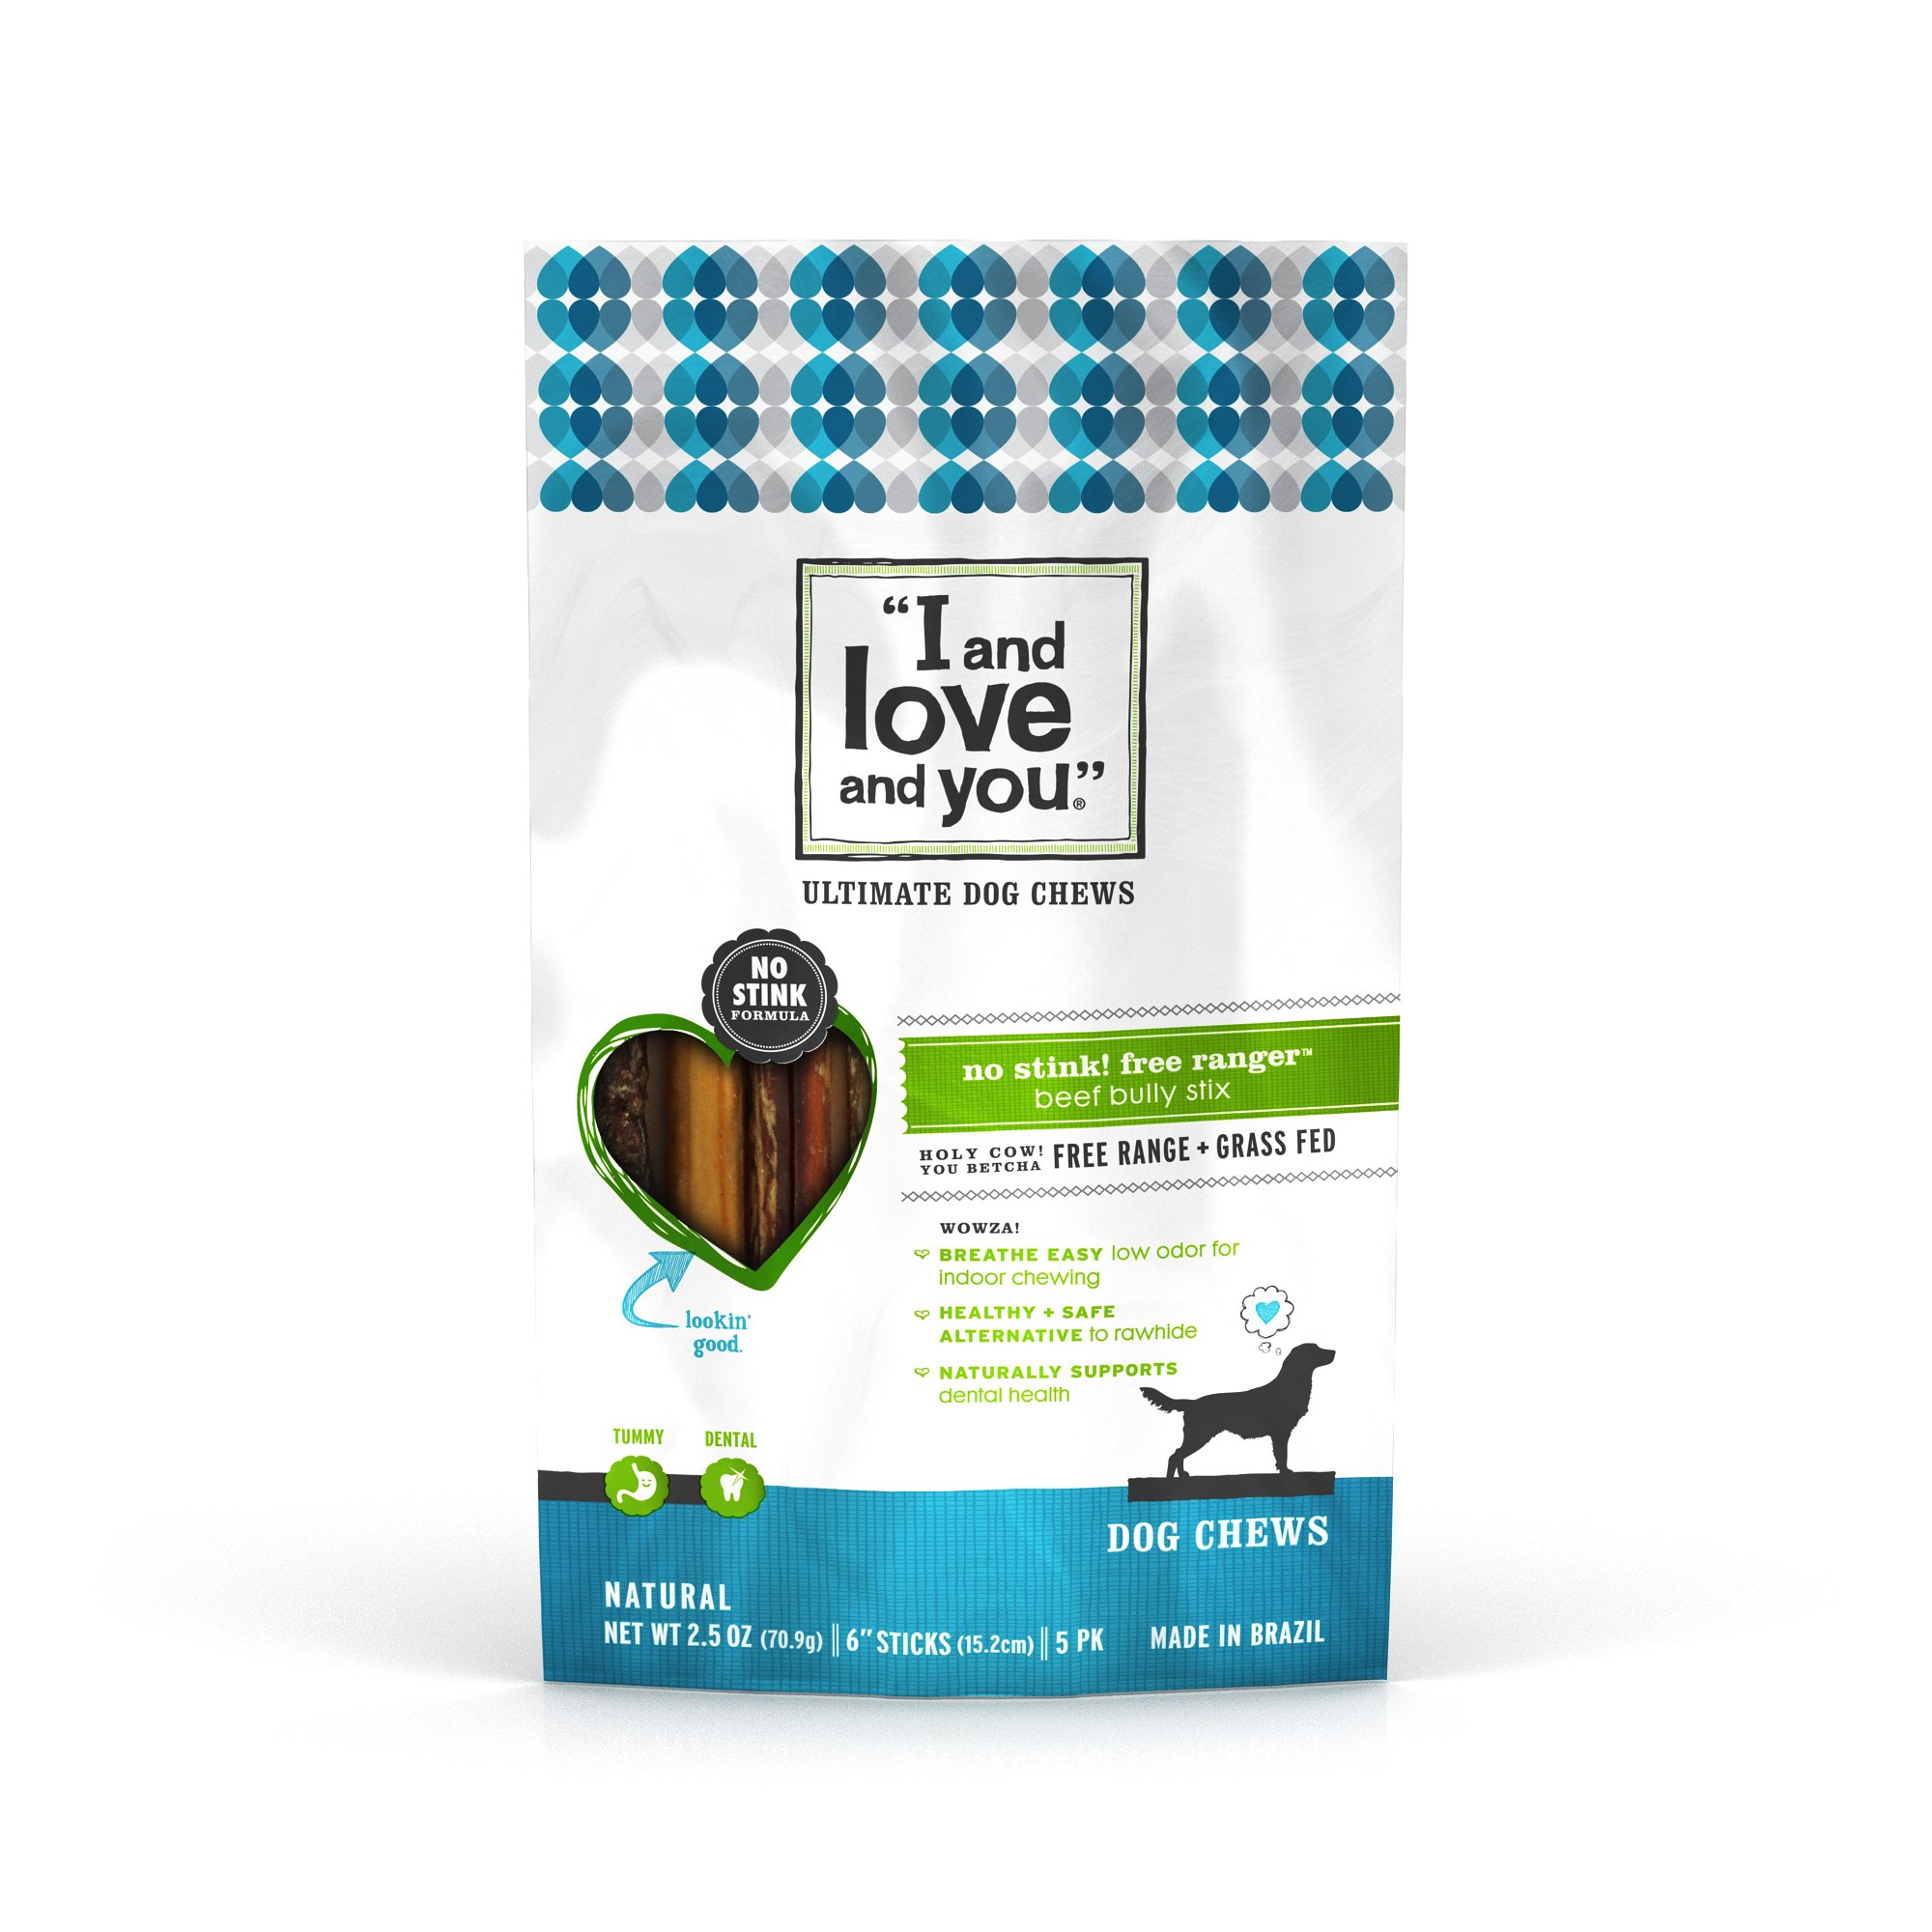 I and love and you'' No Stink! Free Ranger Beef Bully Stix Dog Treats, Five 2.5 Oz 6 Inch Sticks